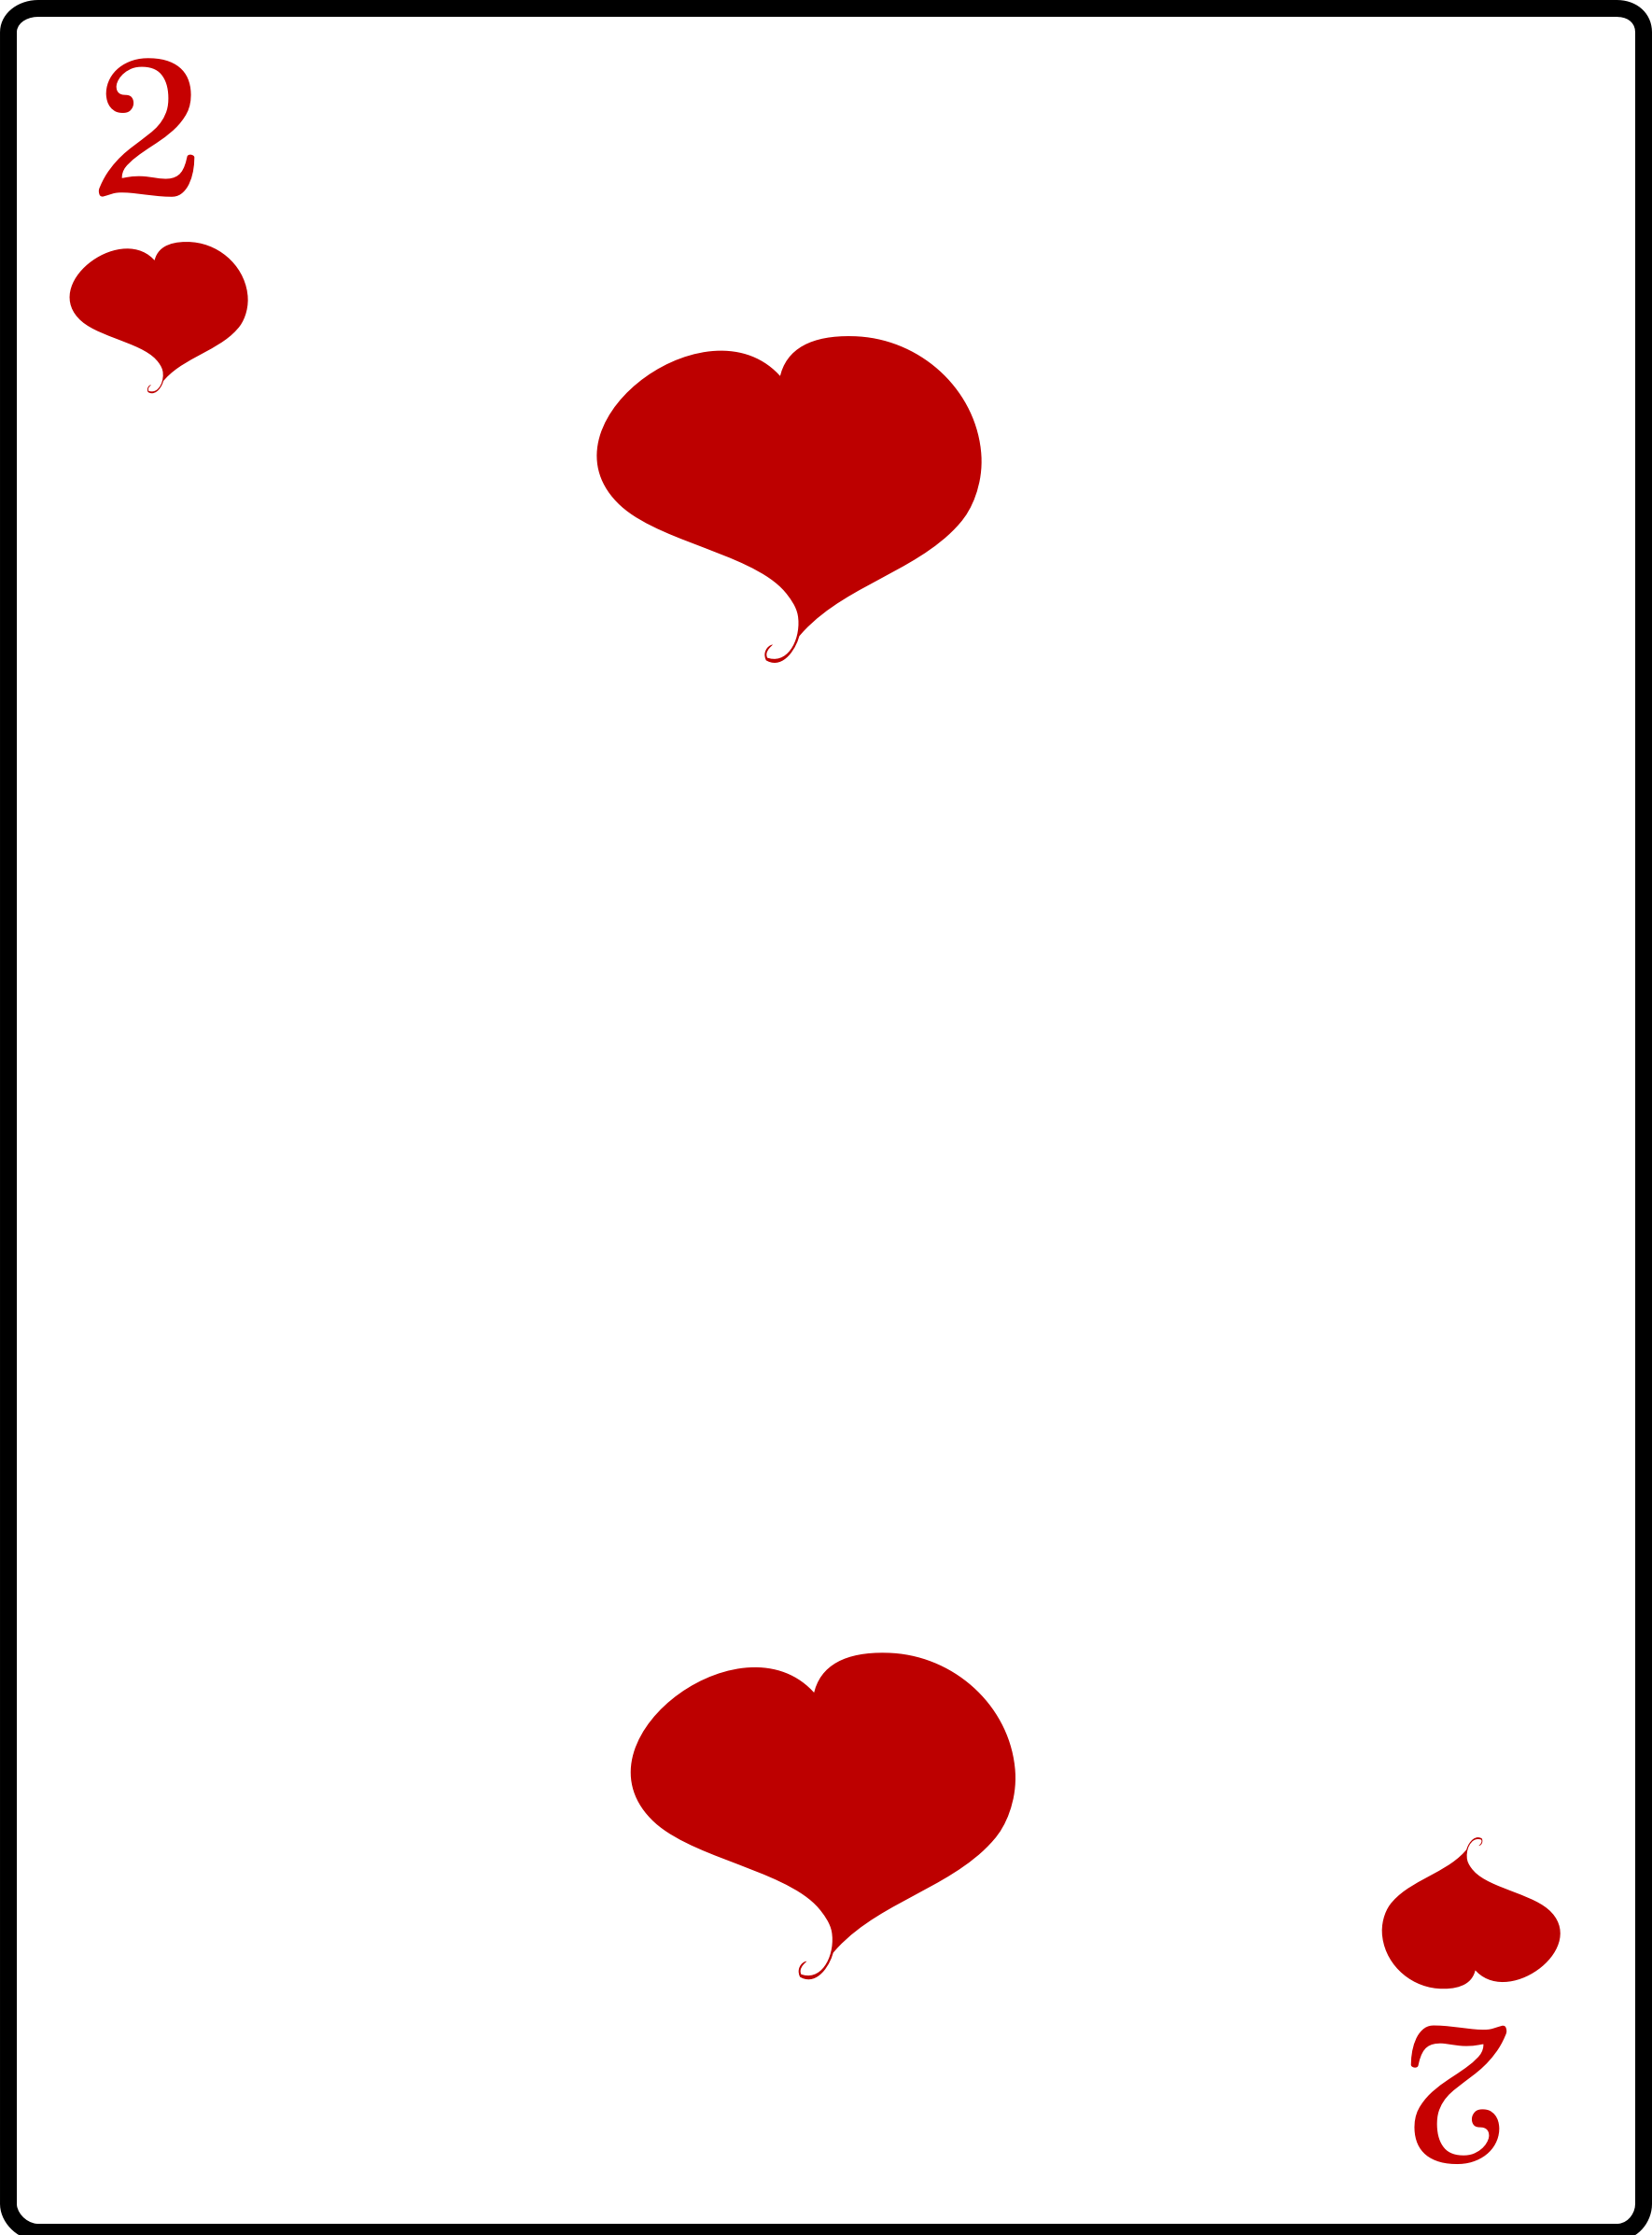 2 of Hearts by casino